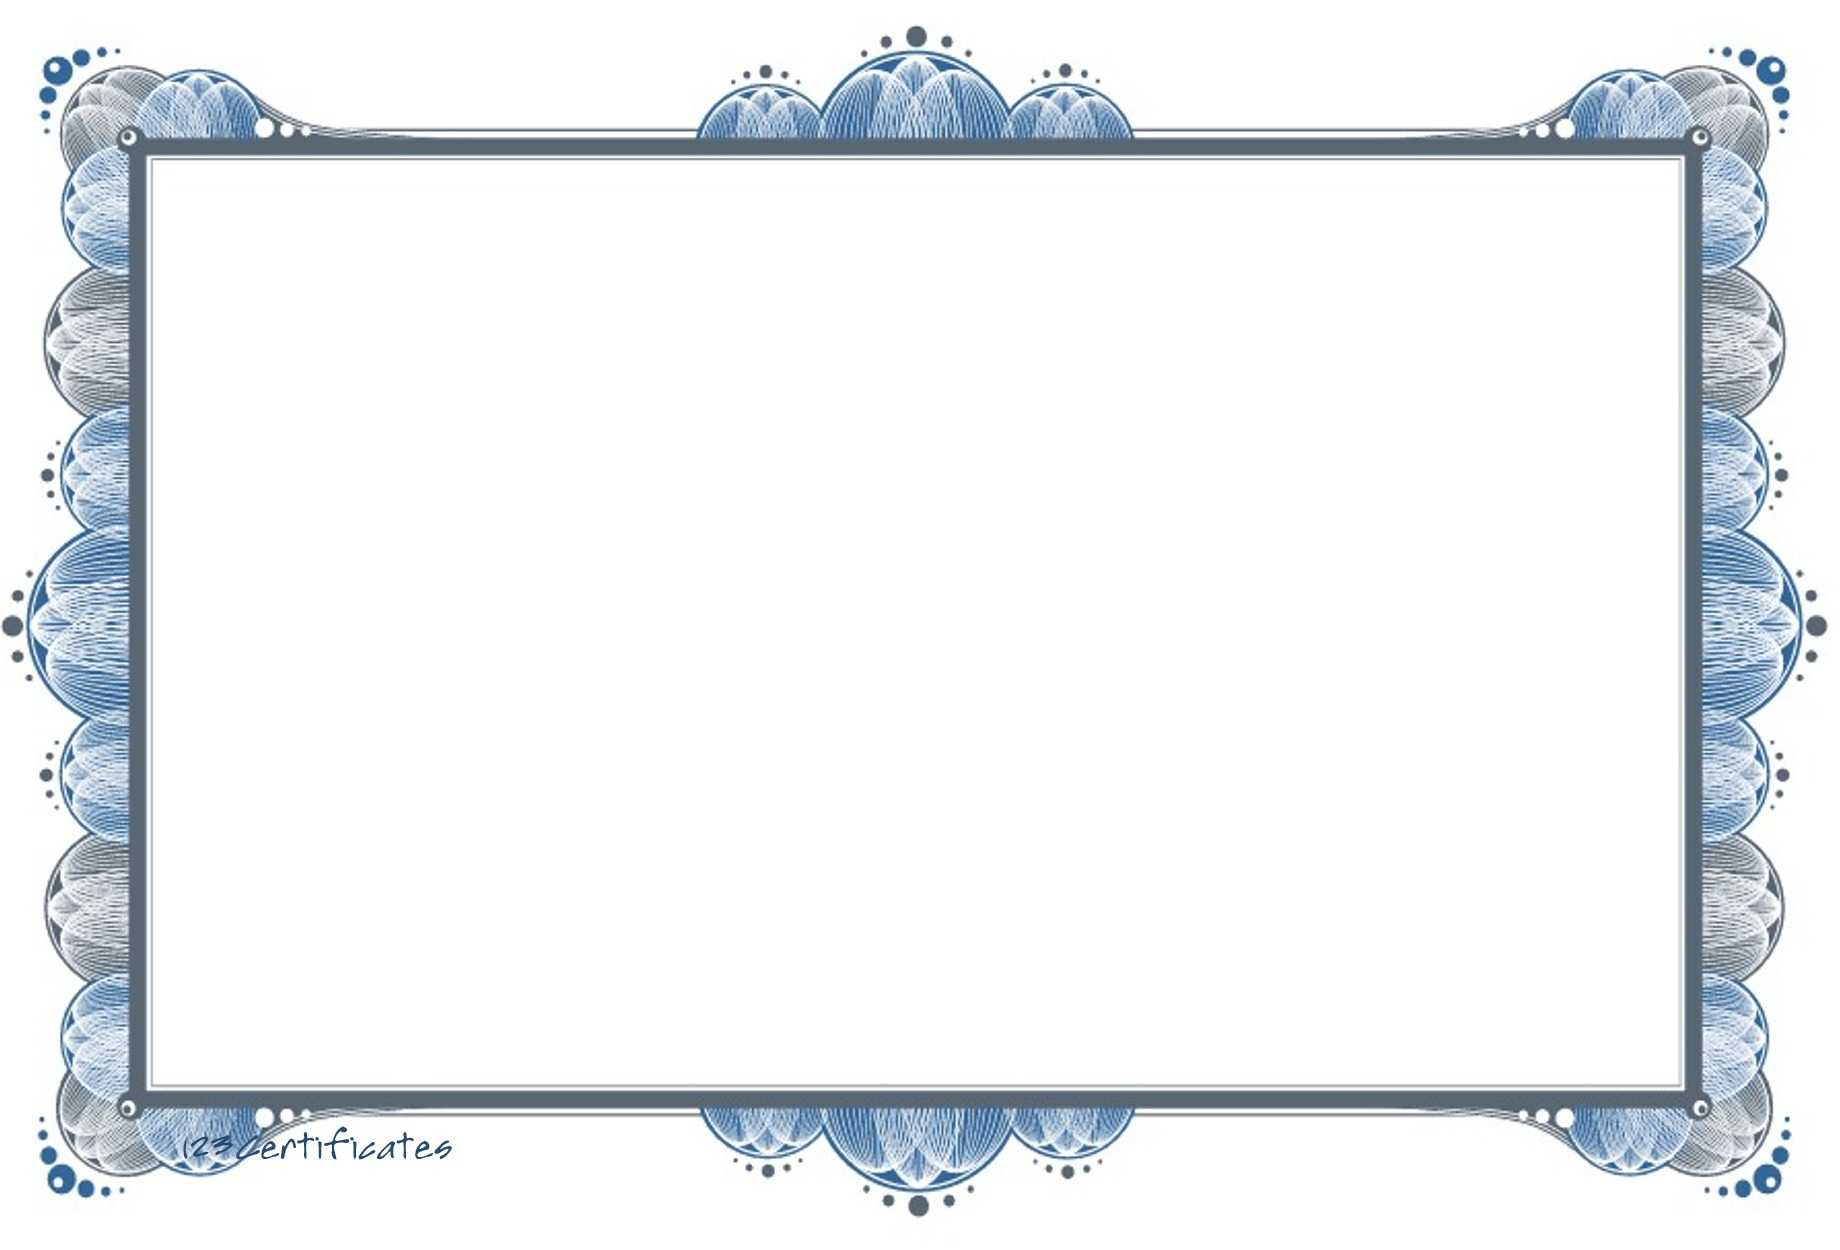 Free Certificate Border, Download Free Clip Art, Free Clip inside Word Border Templates Free Download